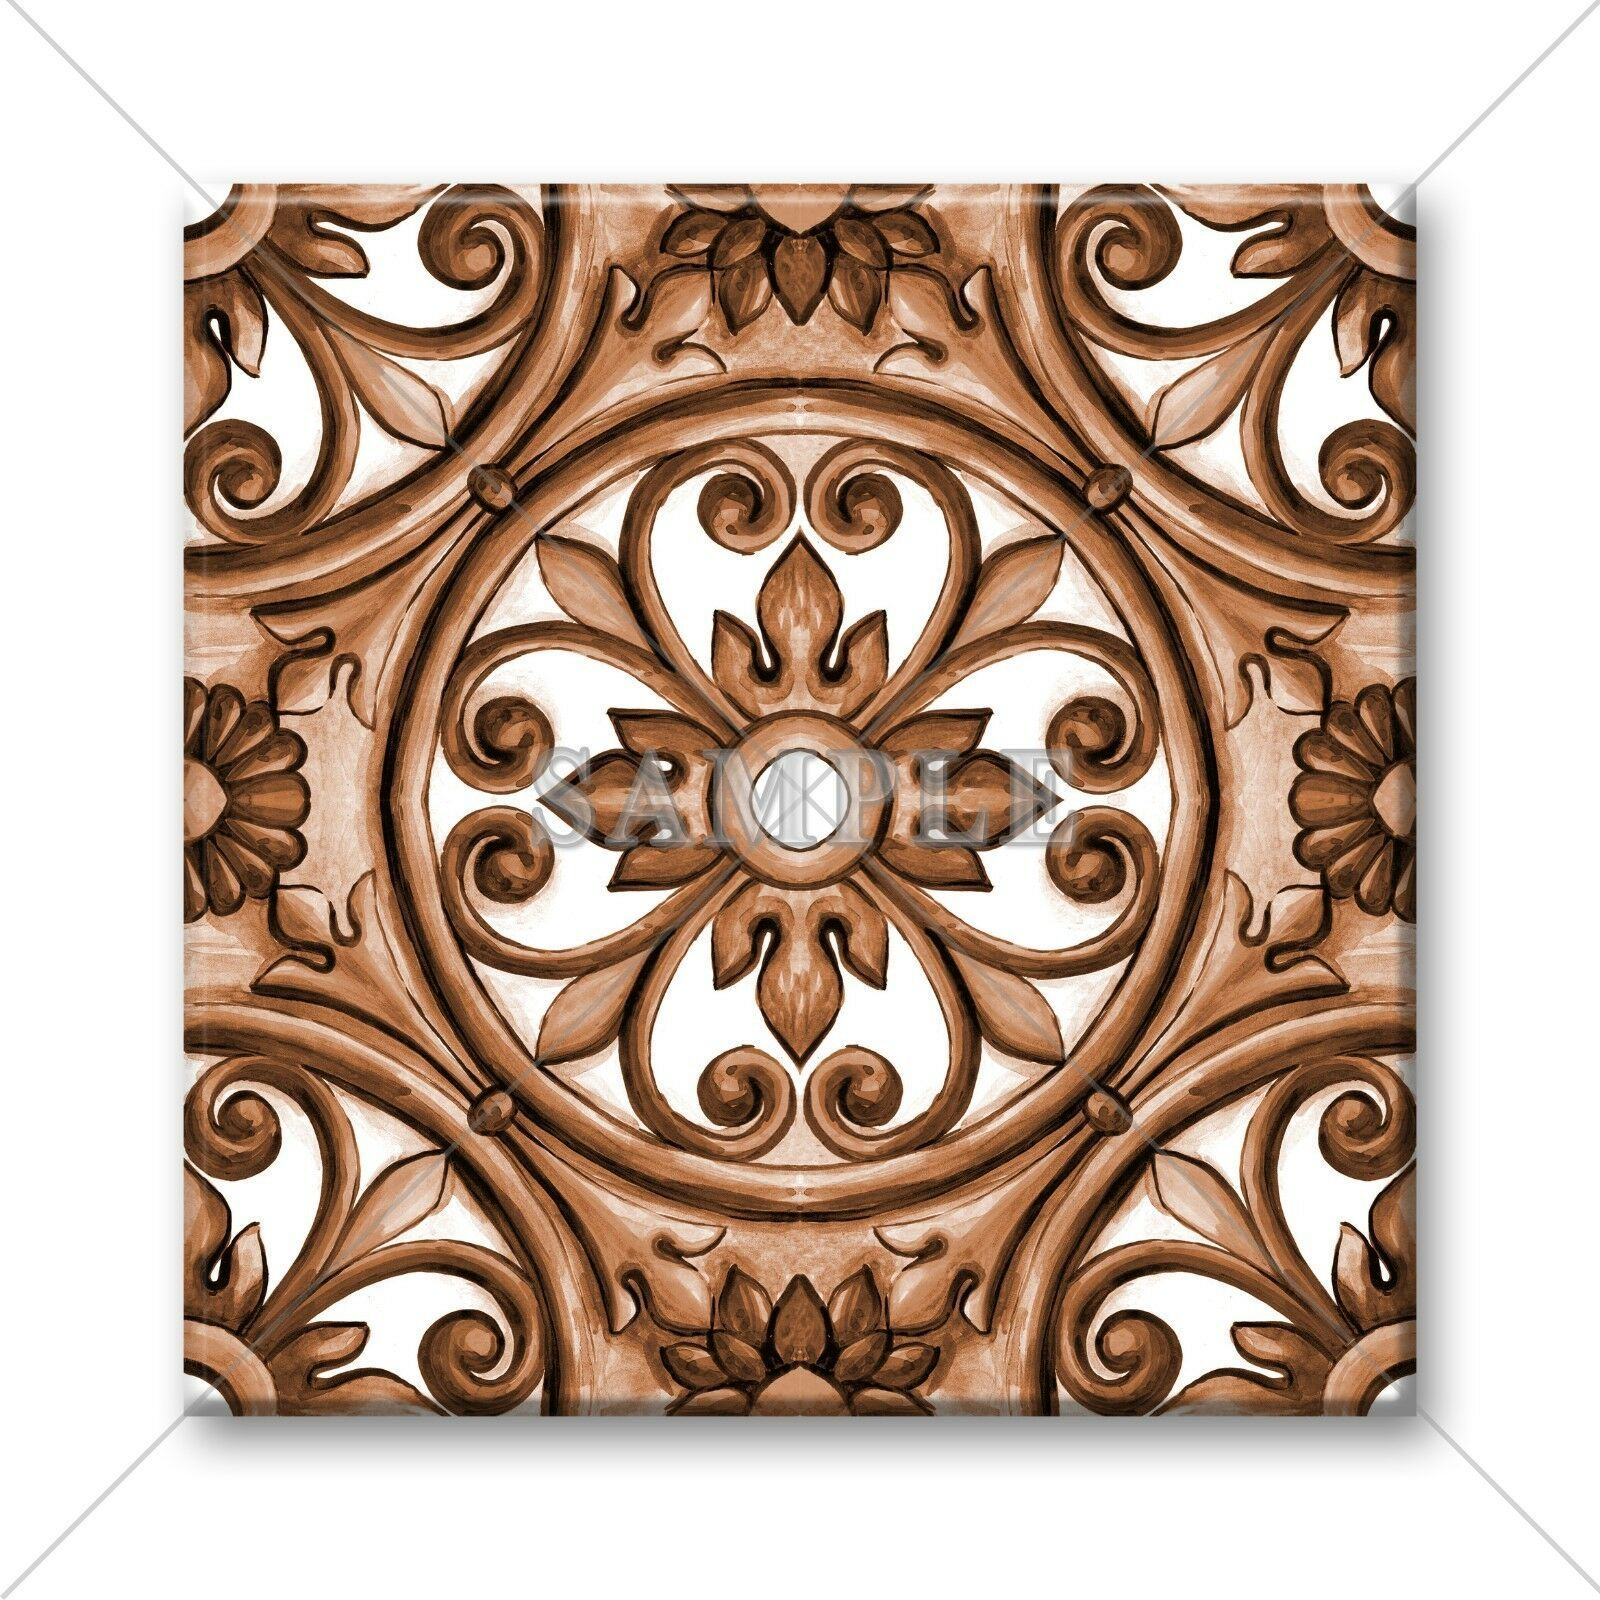 Excellent Photo Ceramics Tile backsplash Thoughts Installing ceramic tile may be tricky. Successful